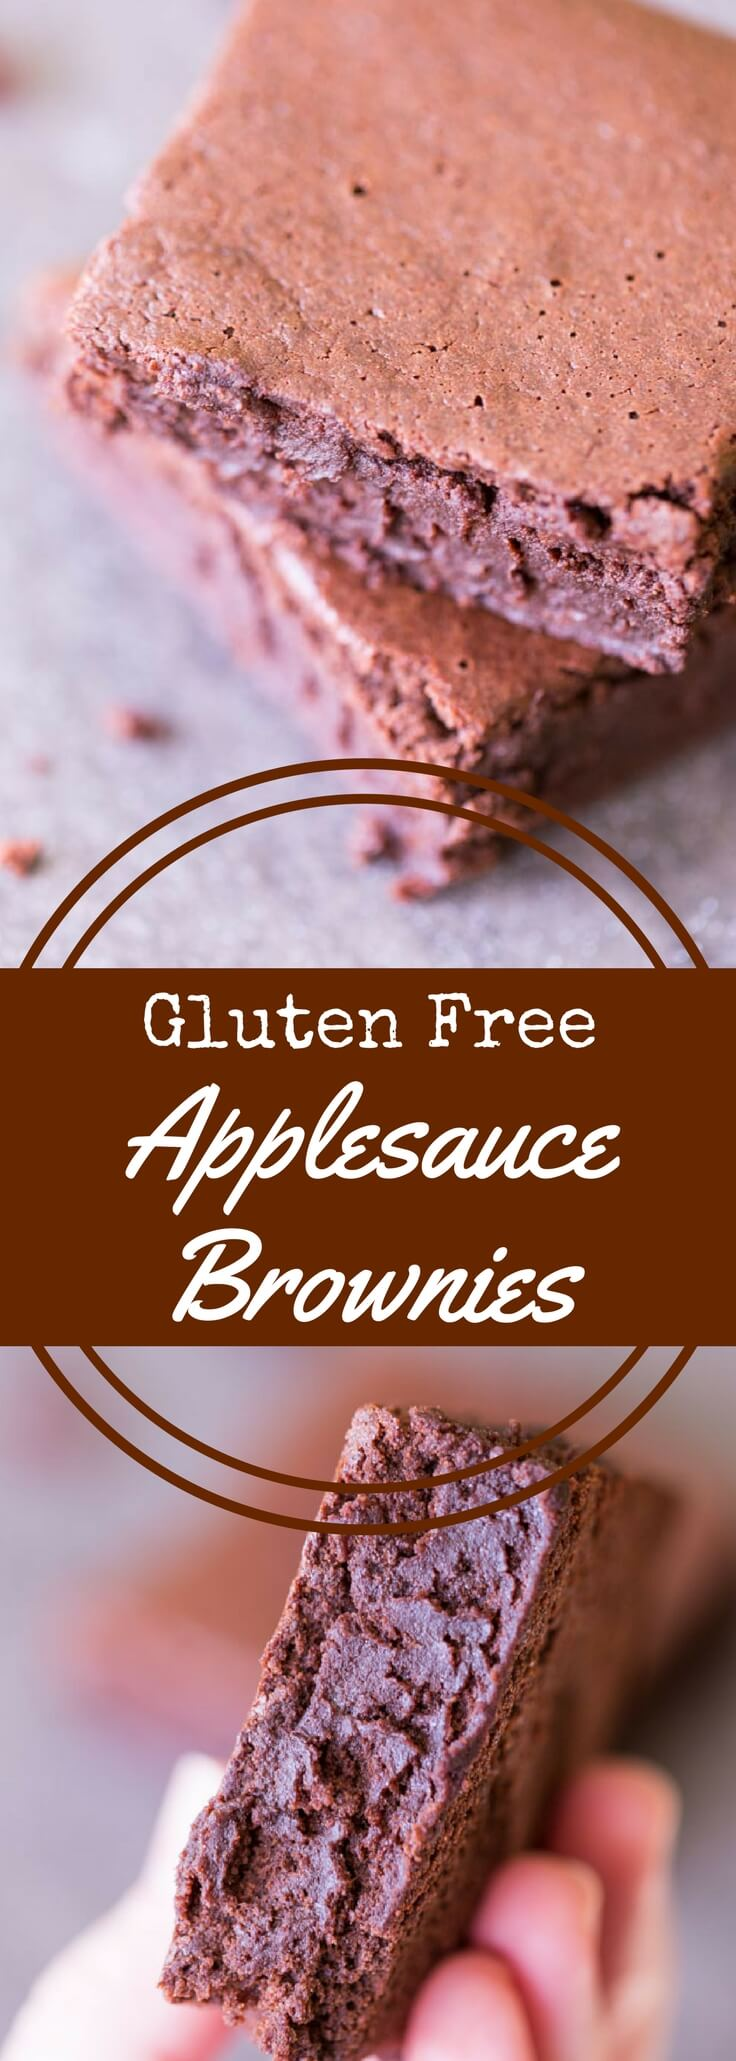 Gluten free applesauce brownies are better-for-you brownies that swap applesauce for butter. They are completely gluten free, dairy free, and delicious!